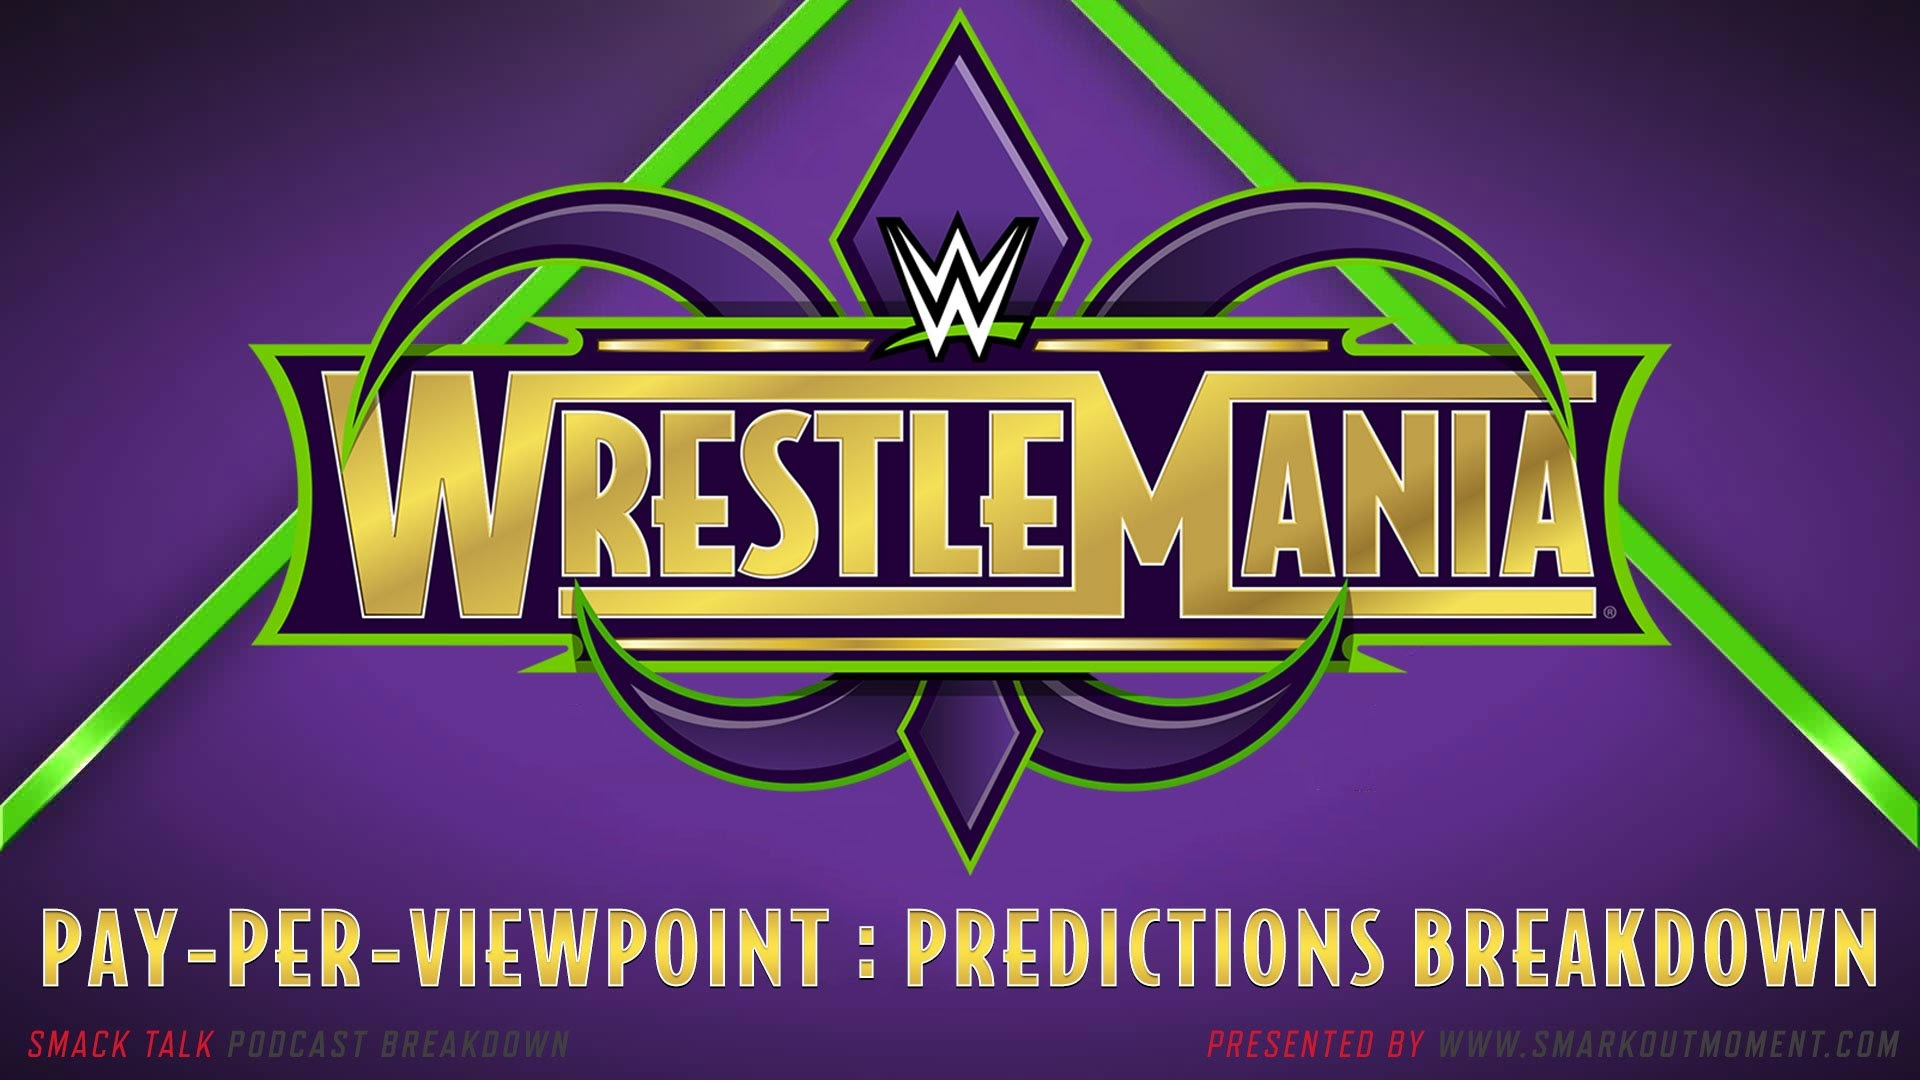 WWE WrestleMania 34 spoilers podcast